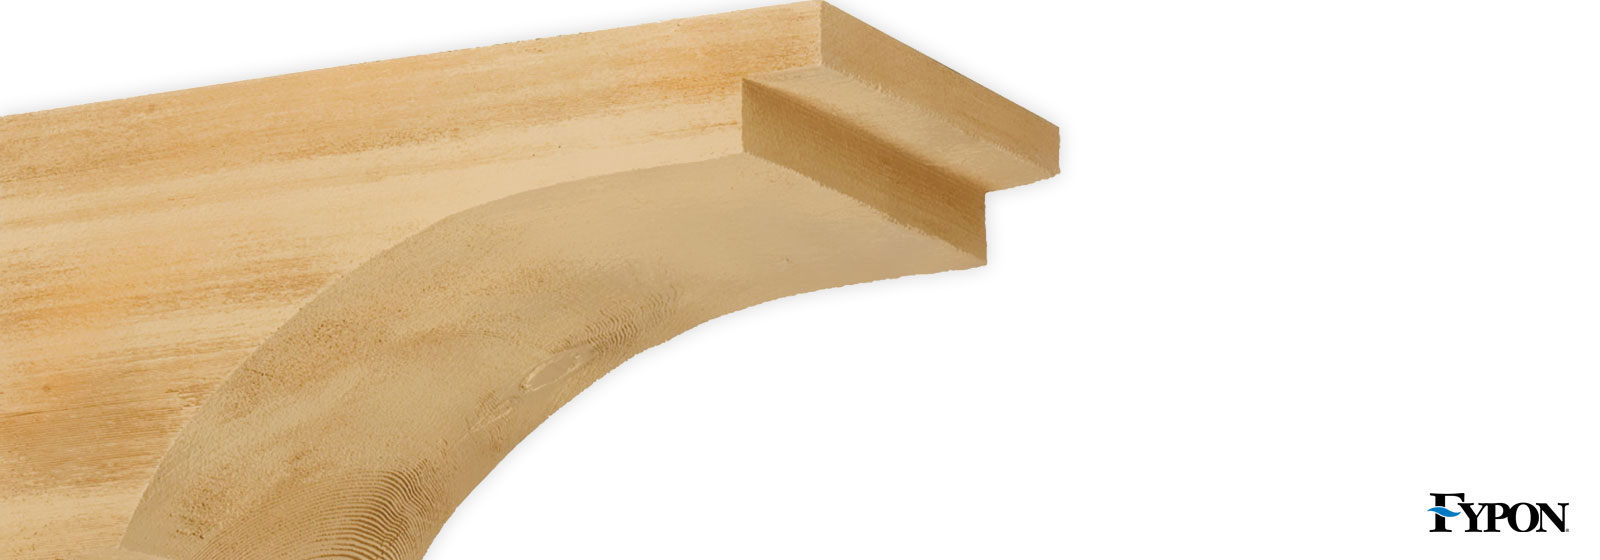 Fypon stone decorative millwork fypon shop diy for Fypon wood beams